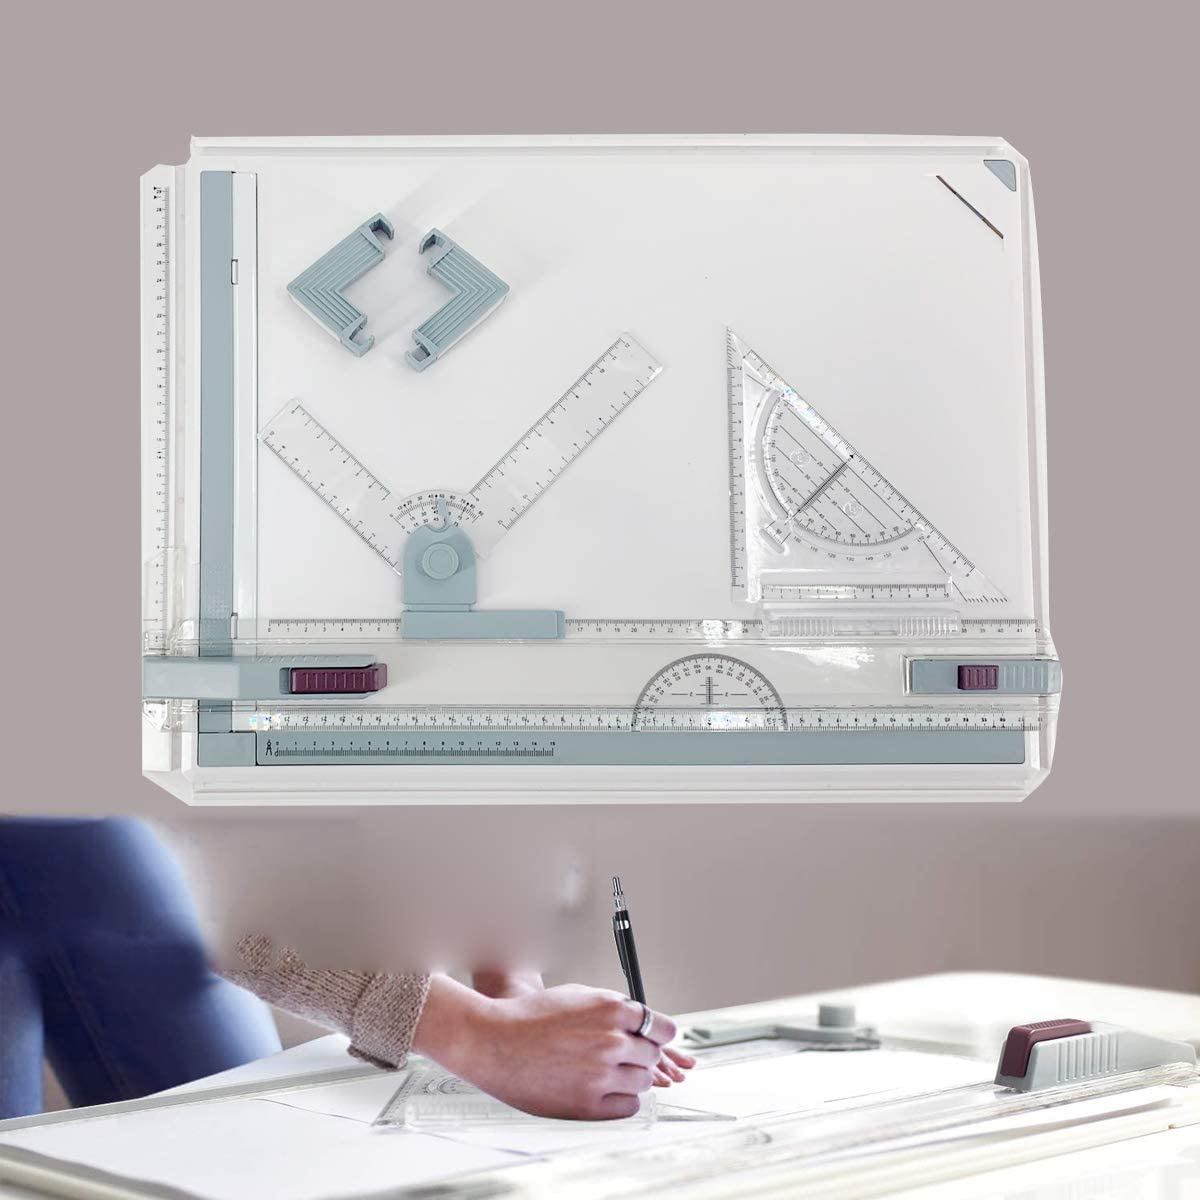 Anti Slip Support Legs Protractor Drawing Tool Set Graphic Architectural Sketch Board with Parallel Motion DOMINTY Drafting Table Drawing Board 20.114.60.35 Grey Sliding Ruler Set Square Clamps